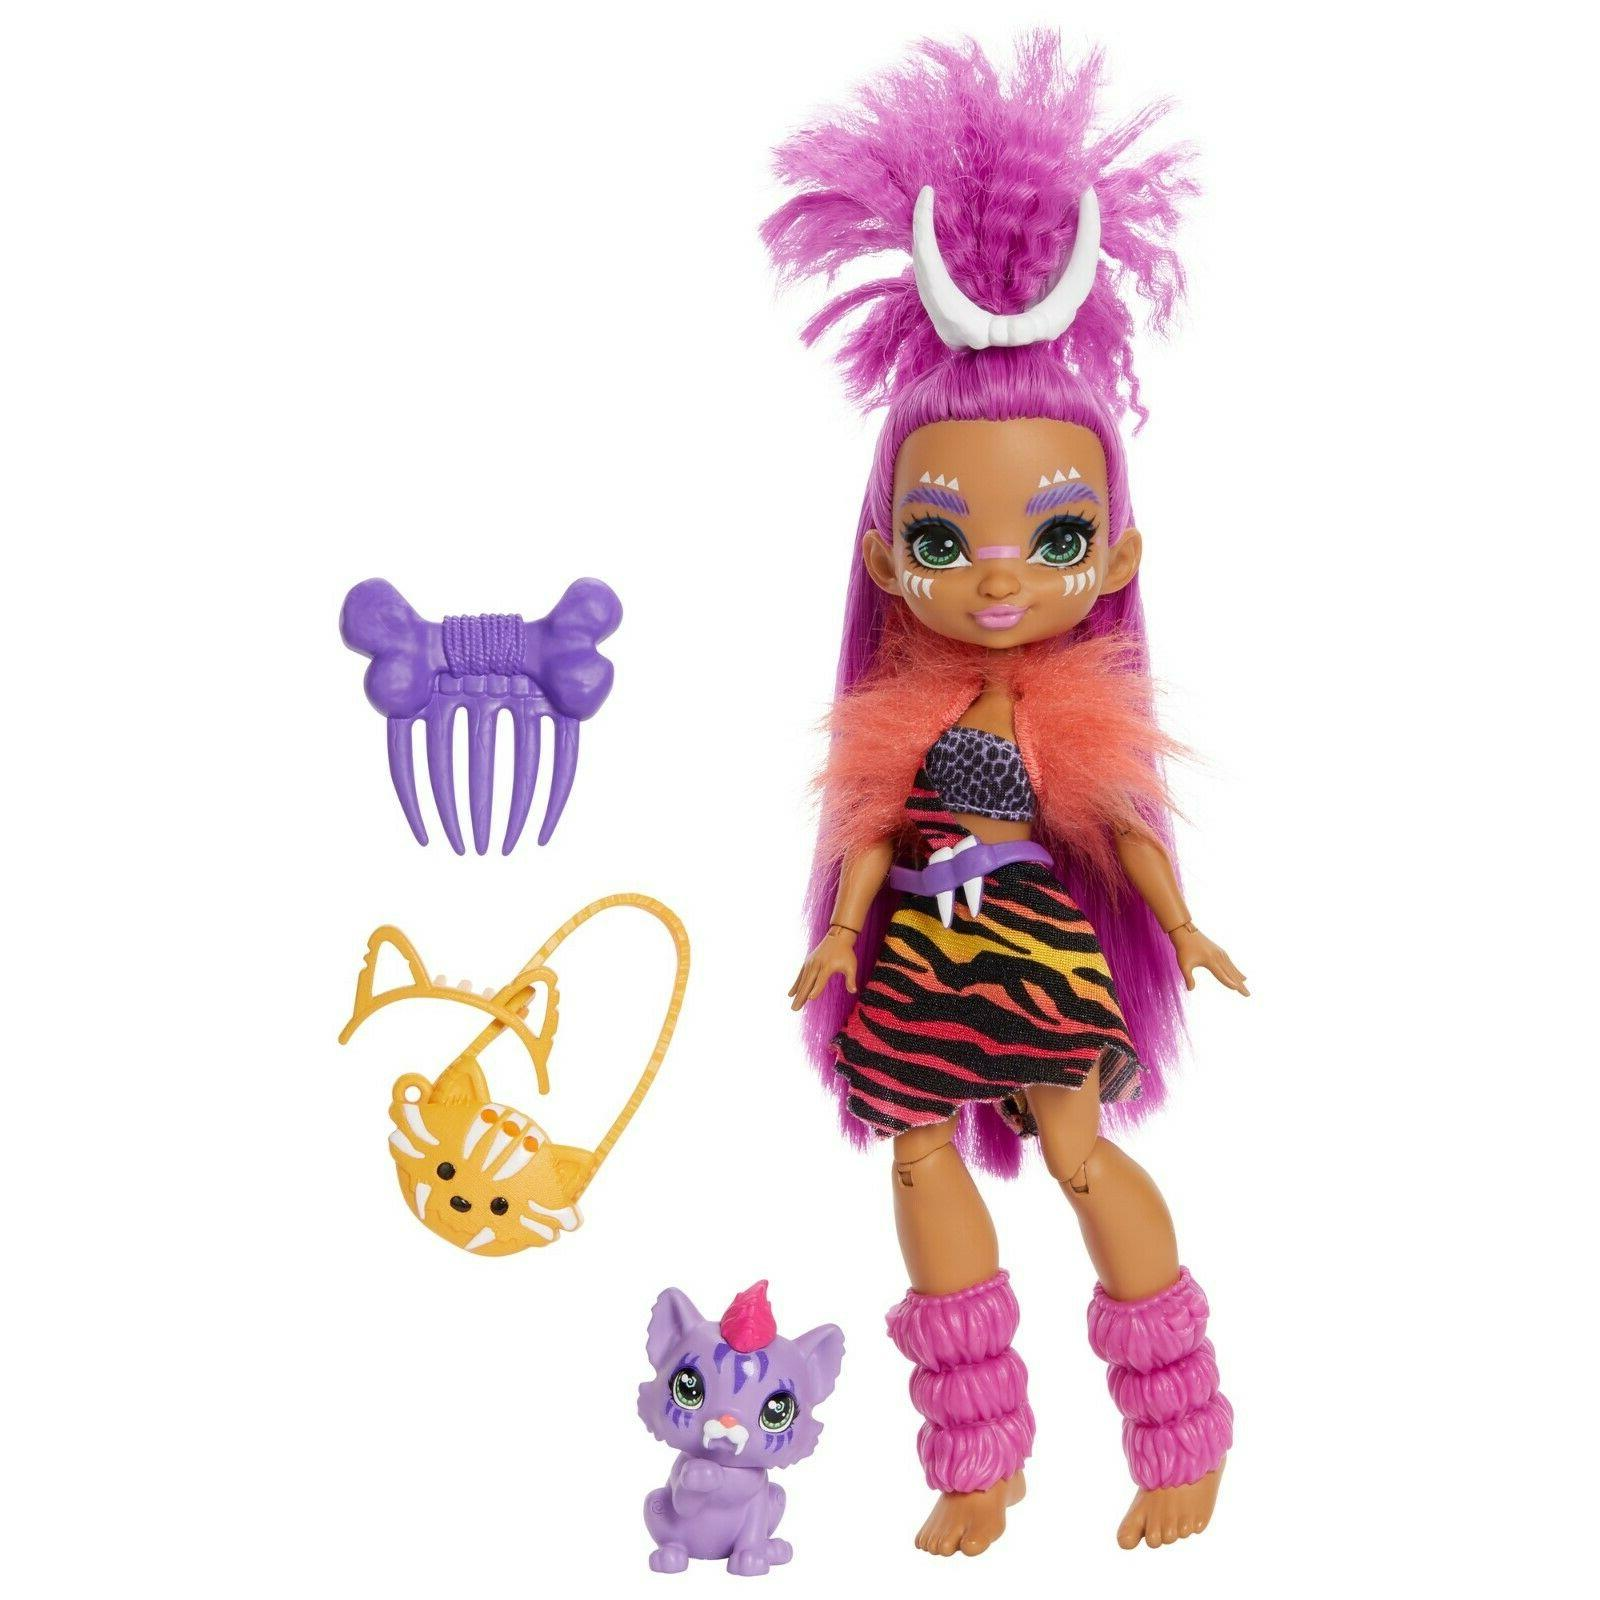 Cave Club Dolls Complete of New Mattel Toys